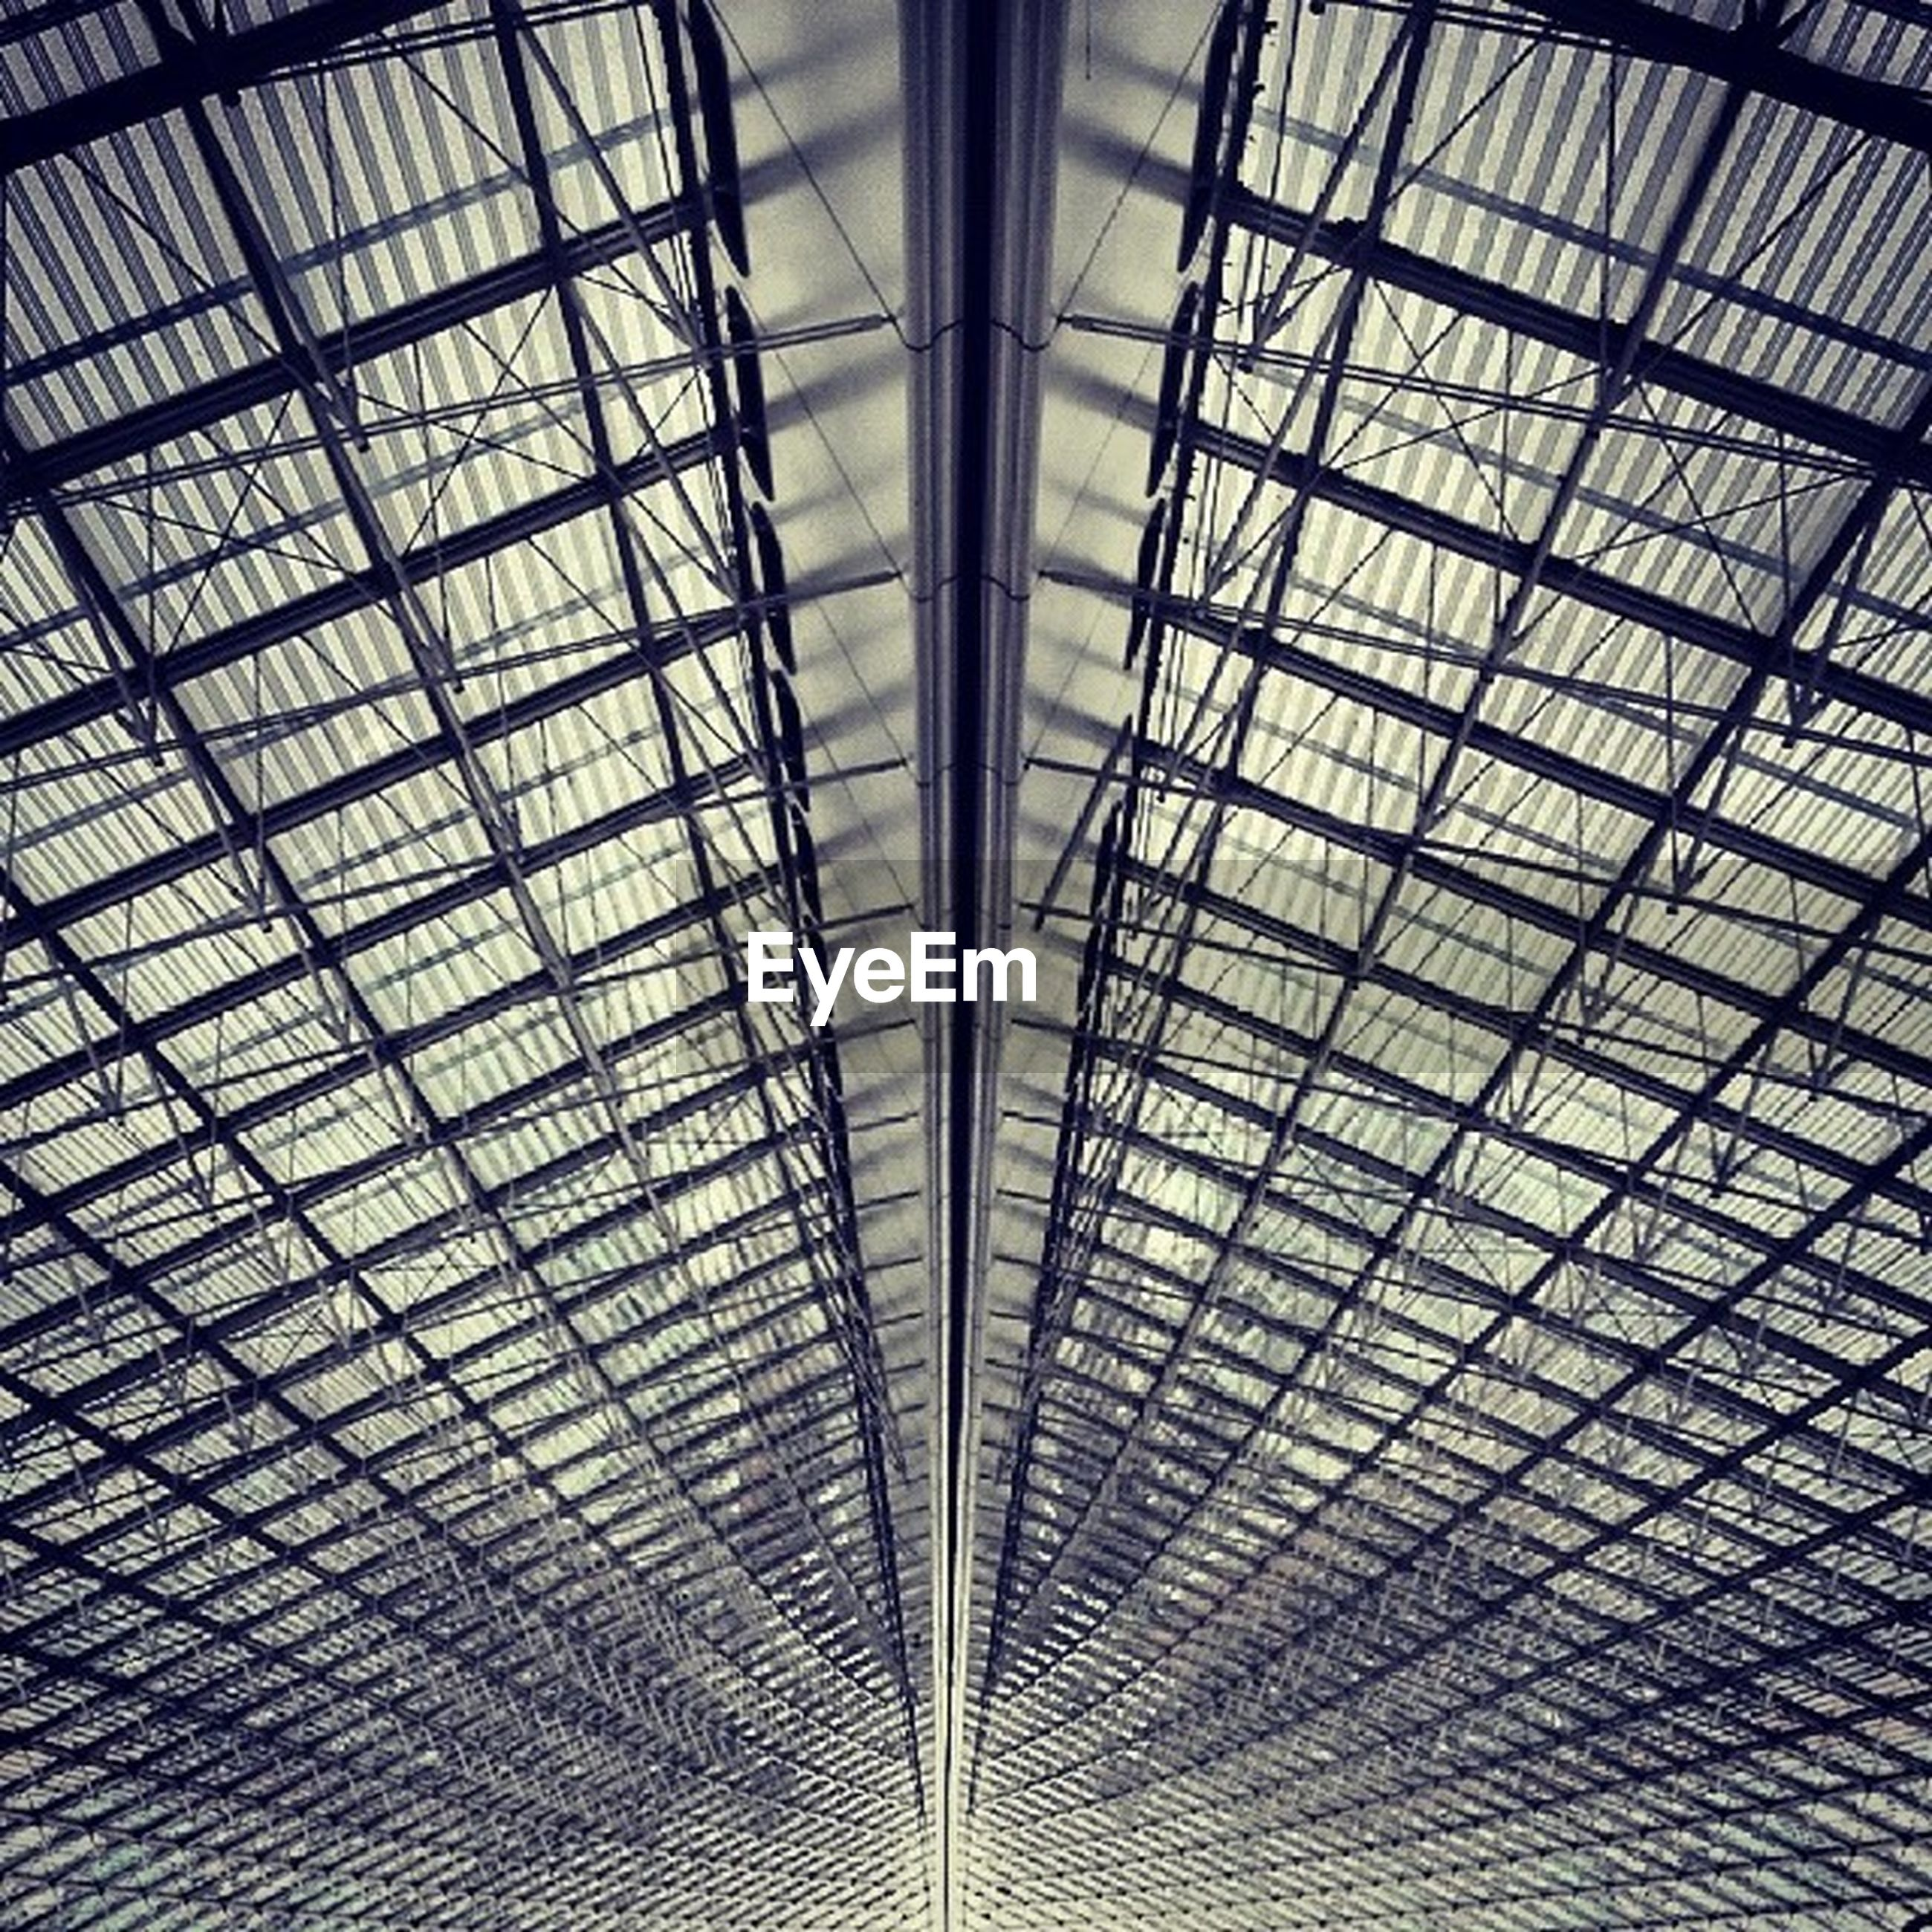 indoors, ceiling, full frame, pattern, architecture, backgrounds, glass - material, built structure, skylight, low angle view, architectural feature, design, interior, transparent, geometric shape, modern, window, no people, grid, day